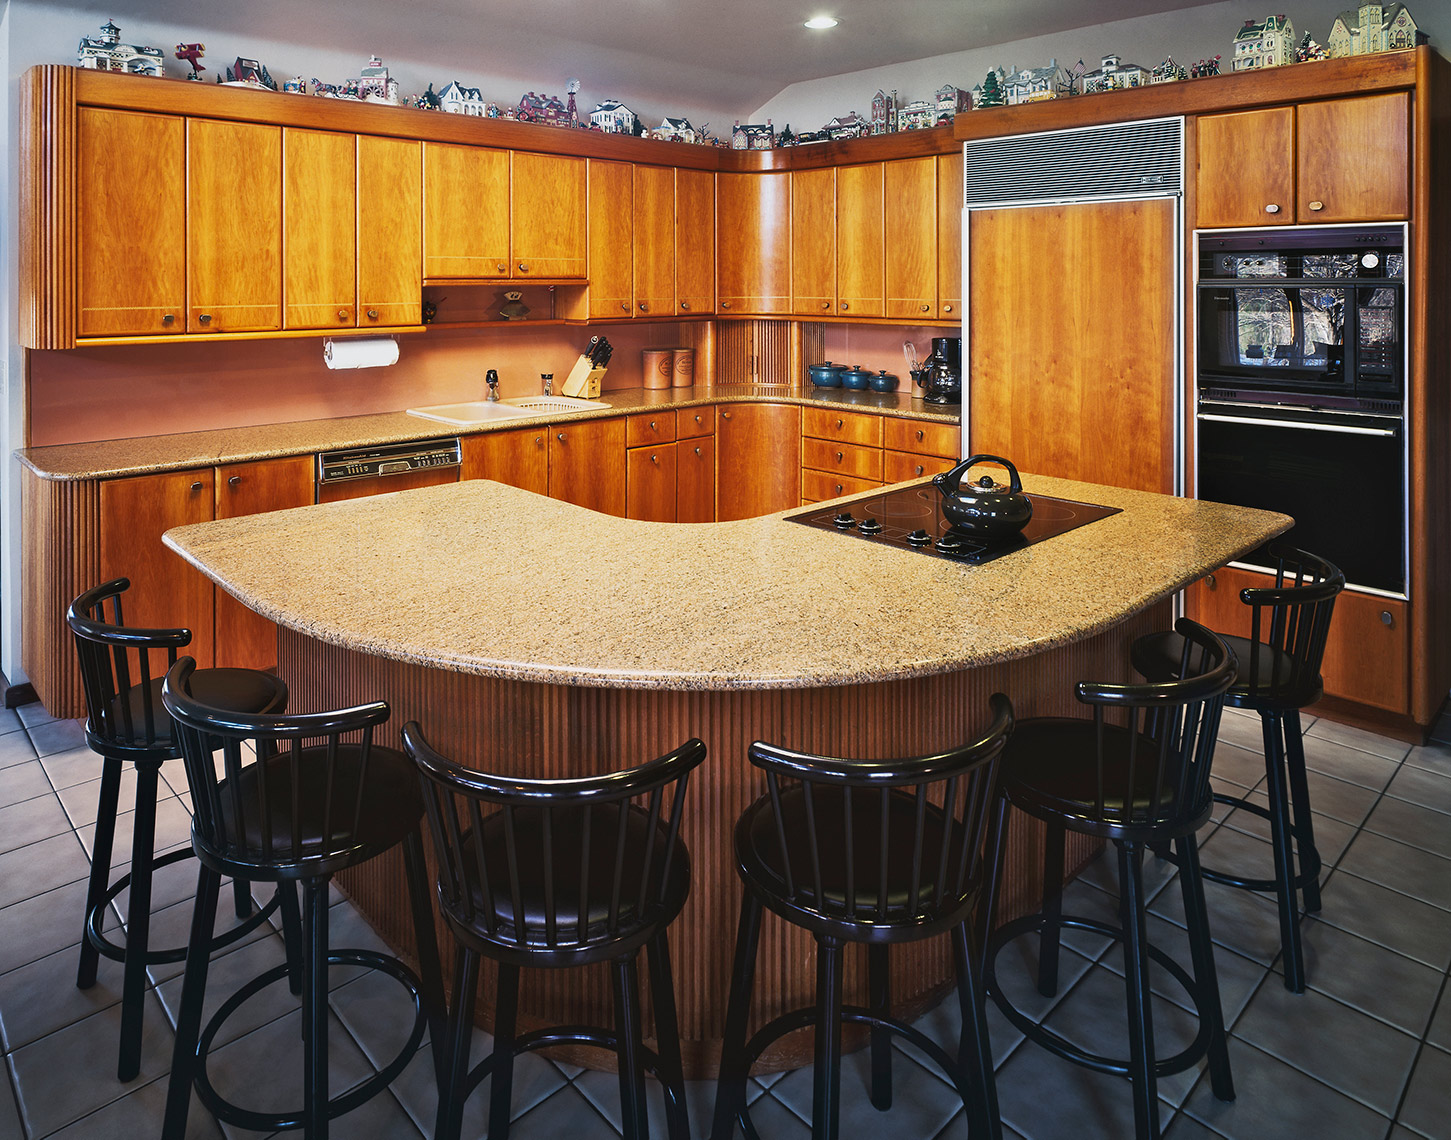 custom kitchen cabinets- mercer county, nj-by birdie miller-Contemporay Cherry and Mahogany